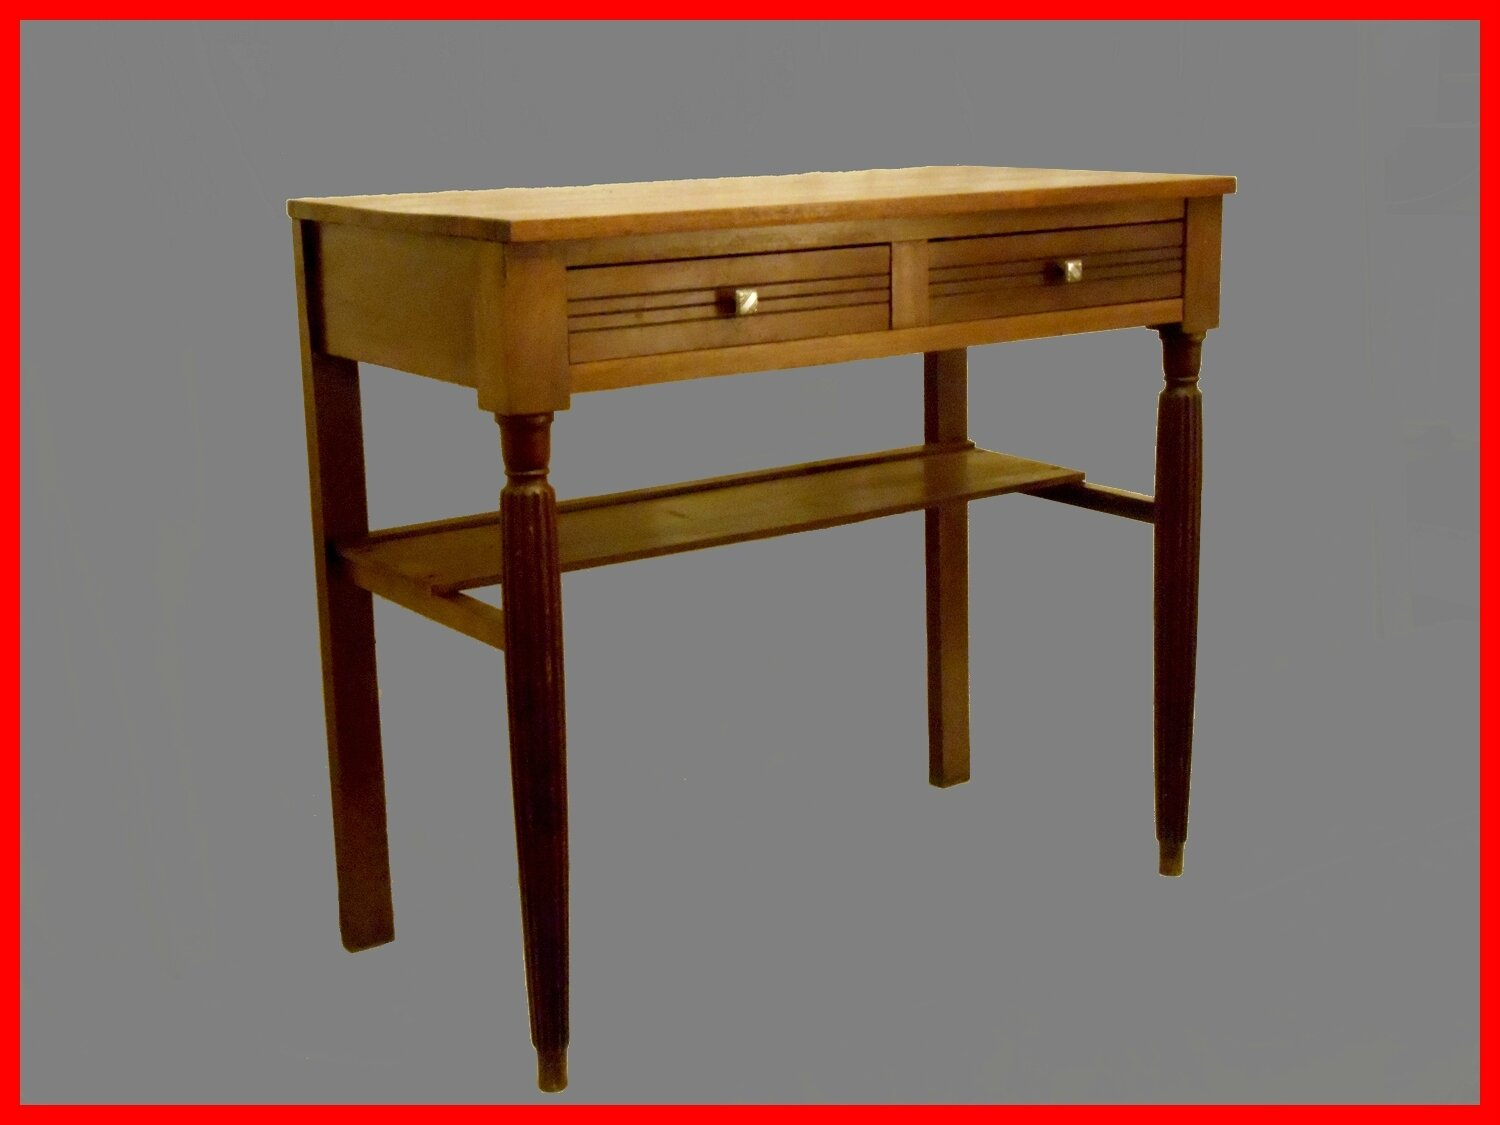 console table d 39 ecriture ancienne vendu meubles et d coration vintage design scandinave. Black Bedroom Furniture Sets. Home Design Ideas